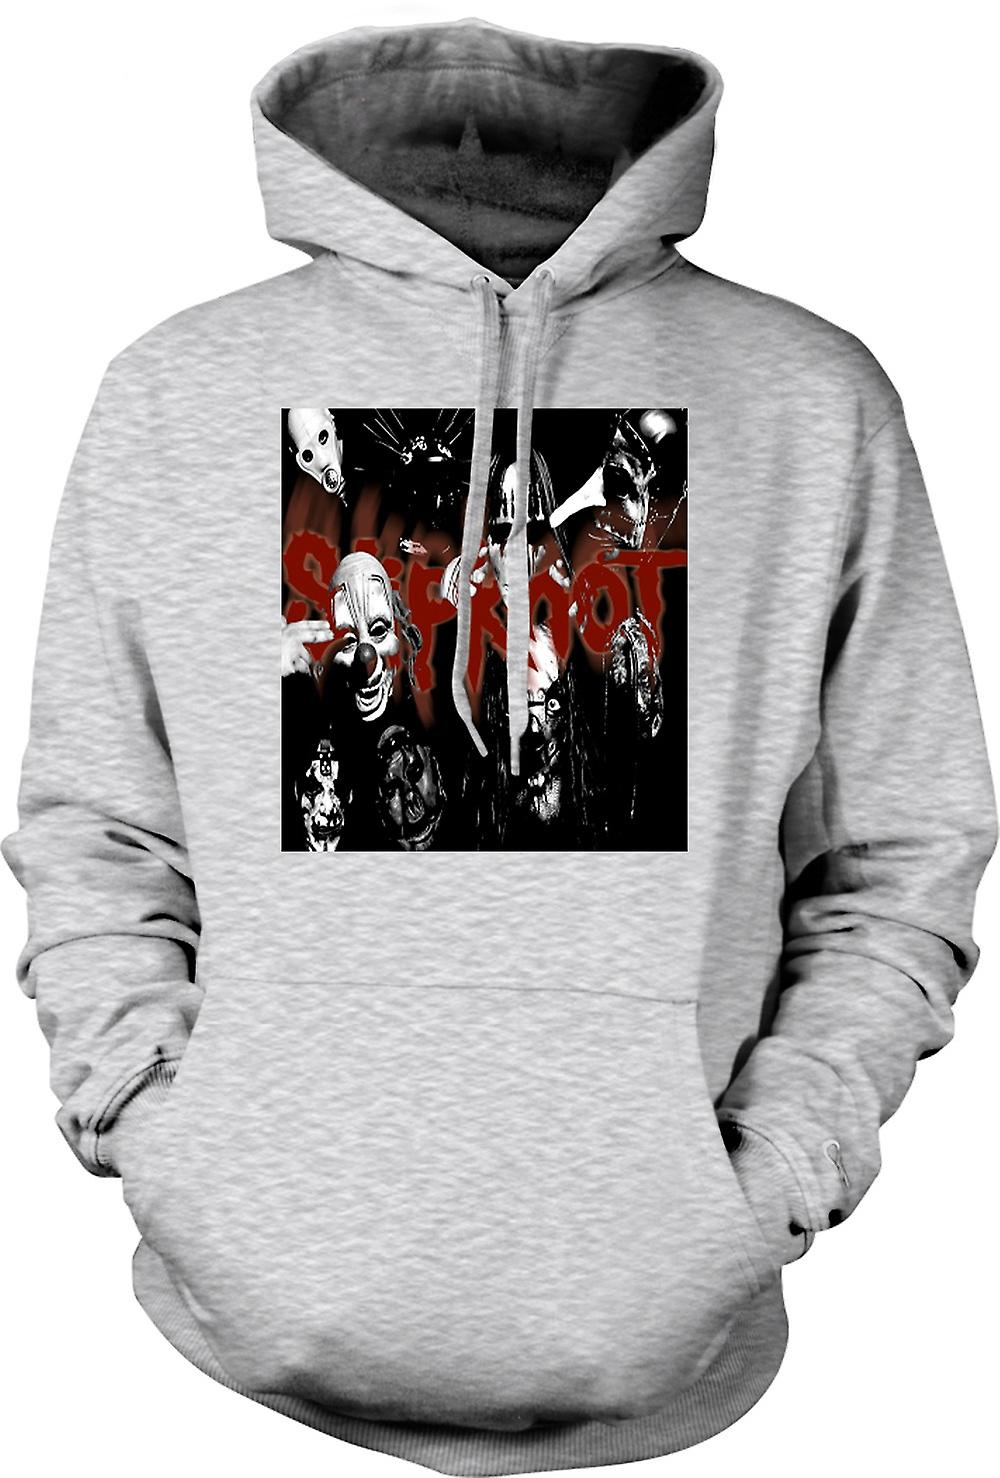 Mens Hoodie - Slipknot - Heavy Metal Band